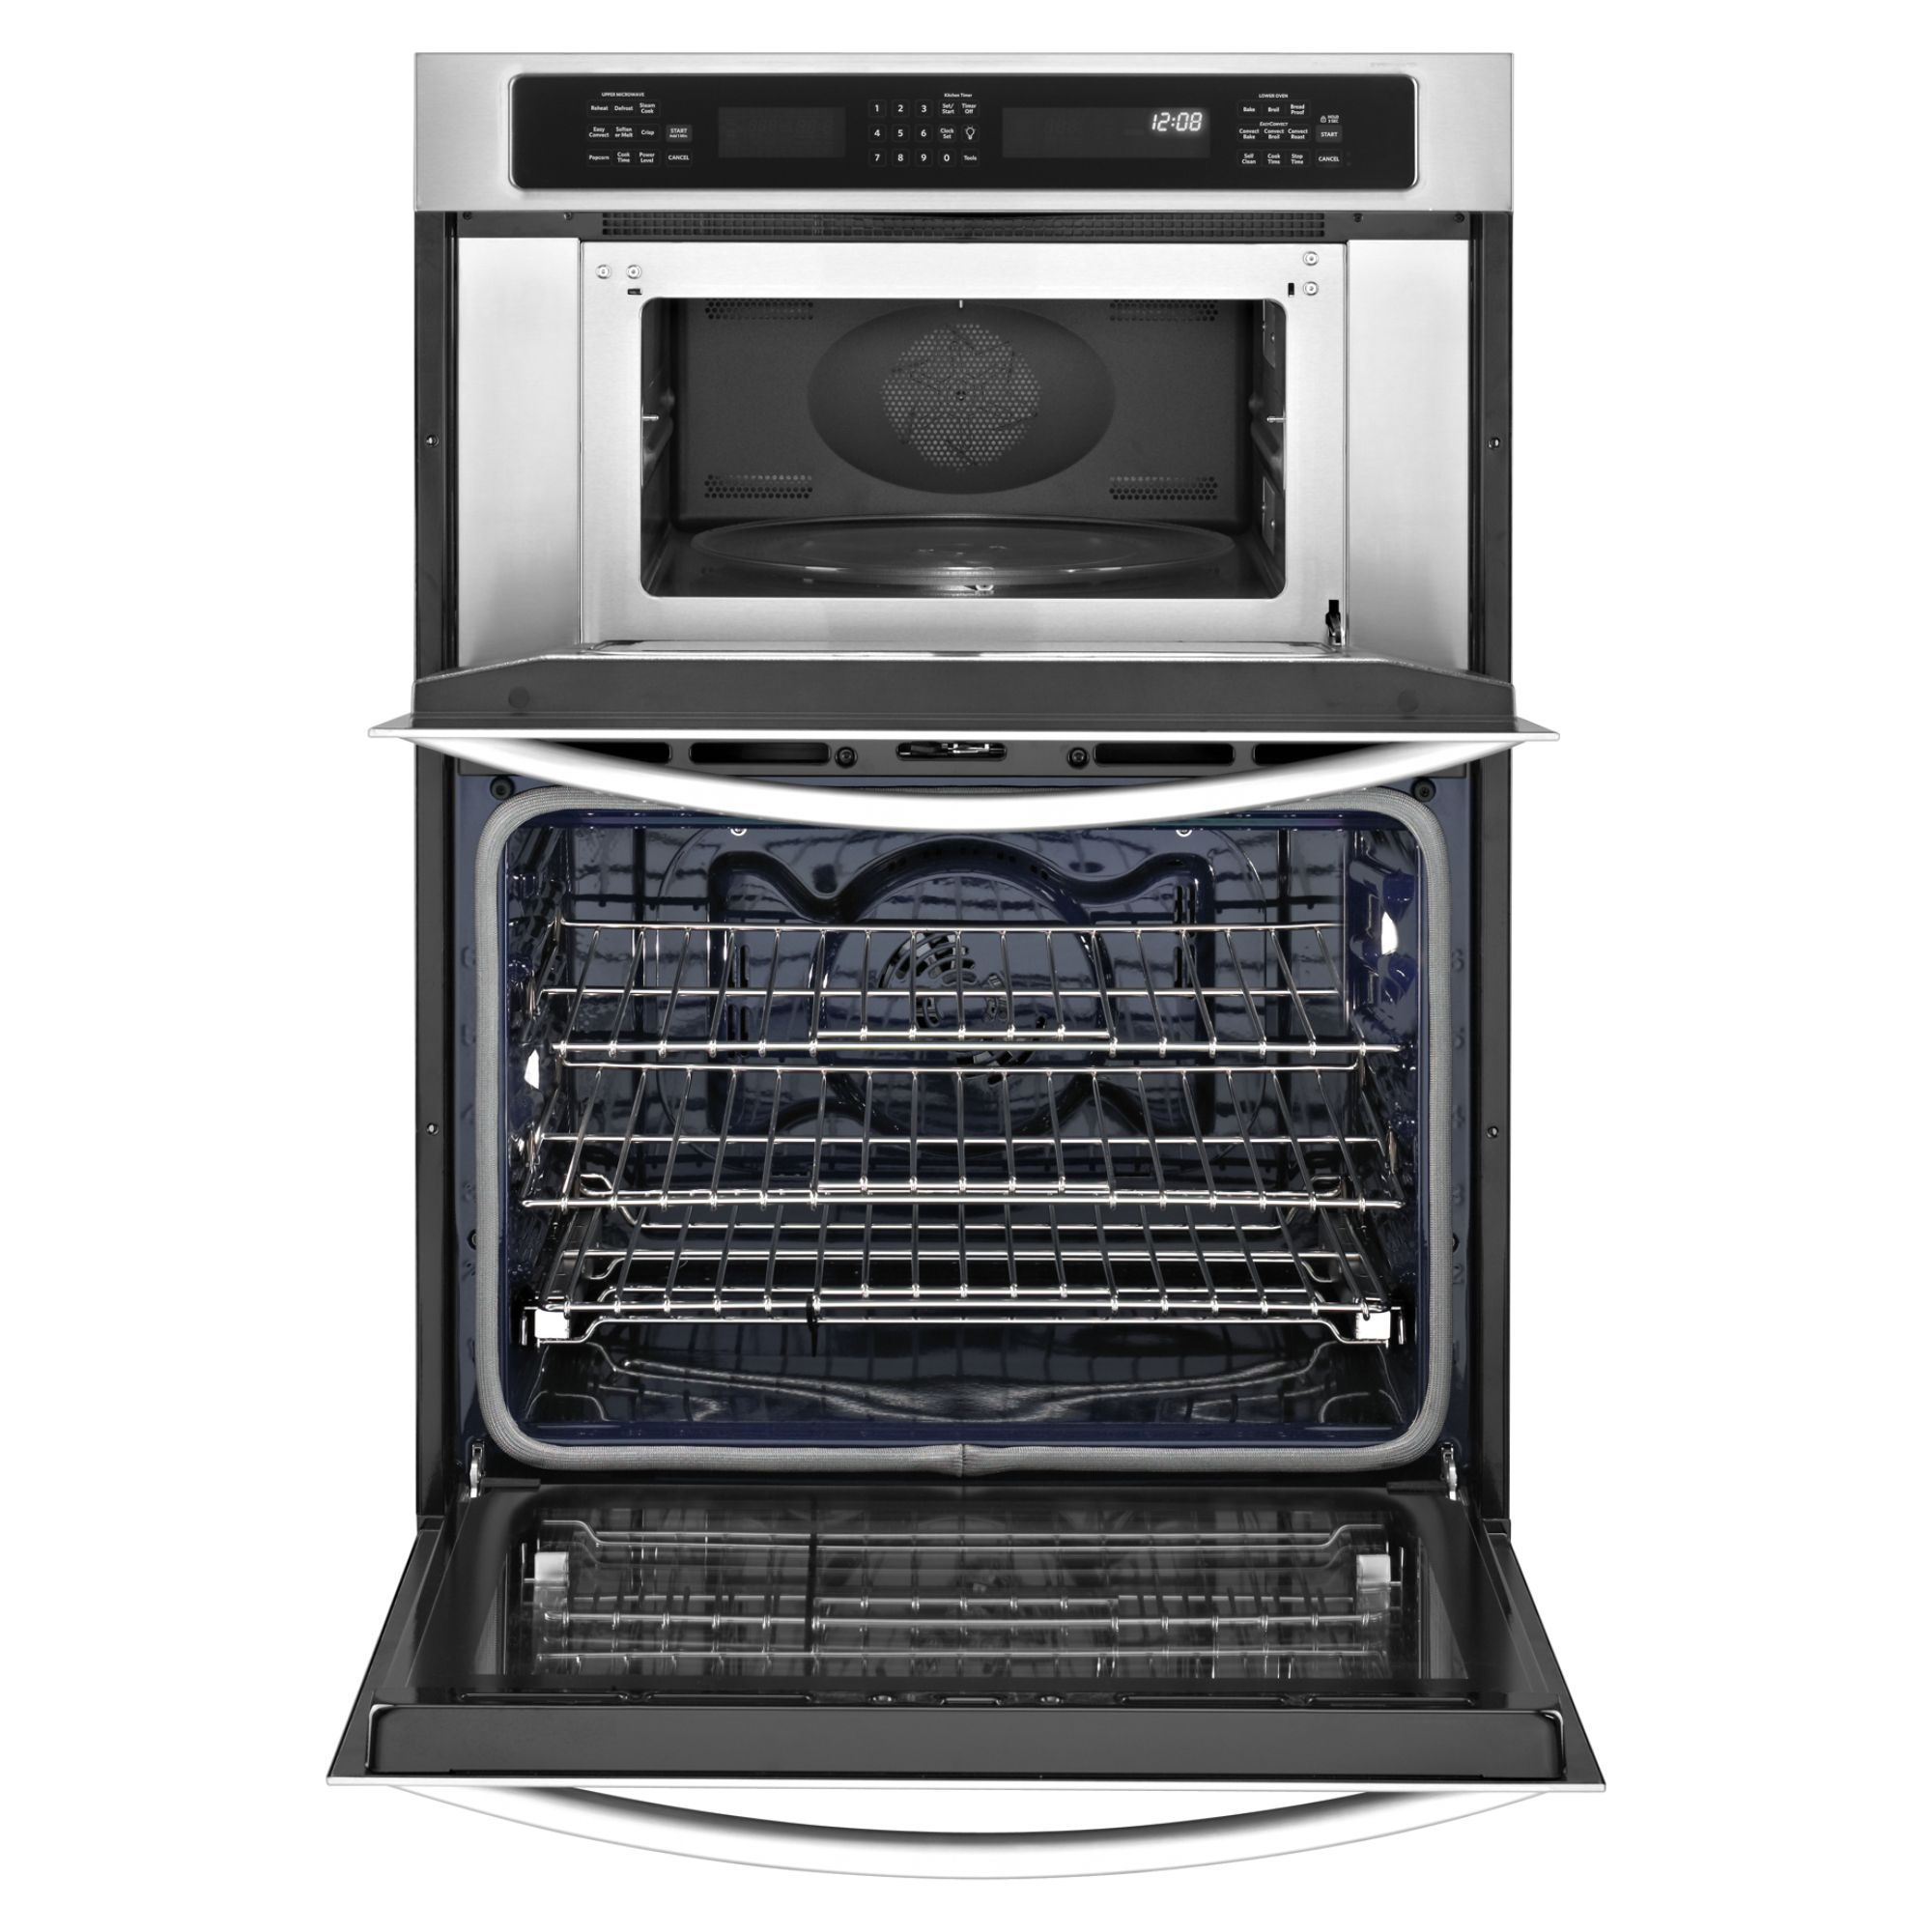 "KitchenAid 27"" Built-In Combination Wall Oven w/ True Convection - Stainless Steel"